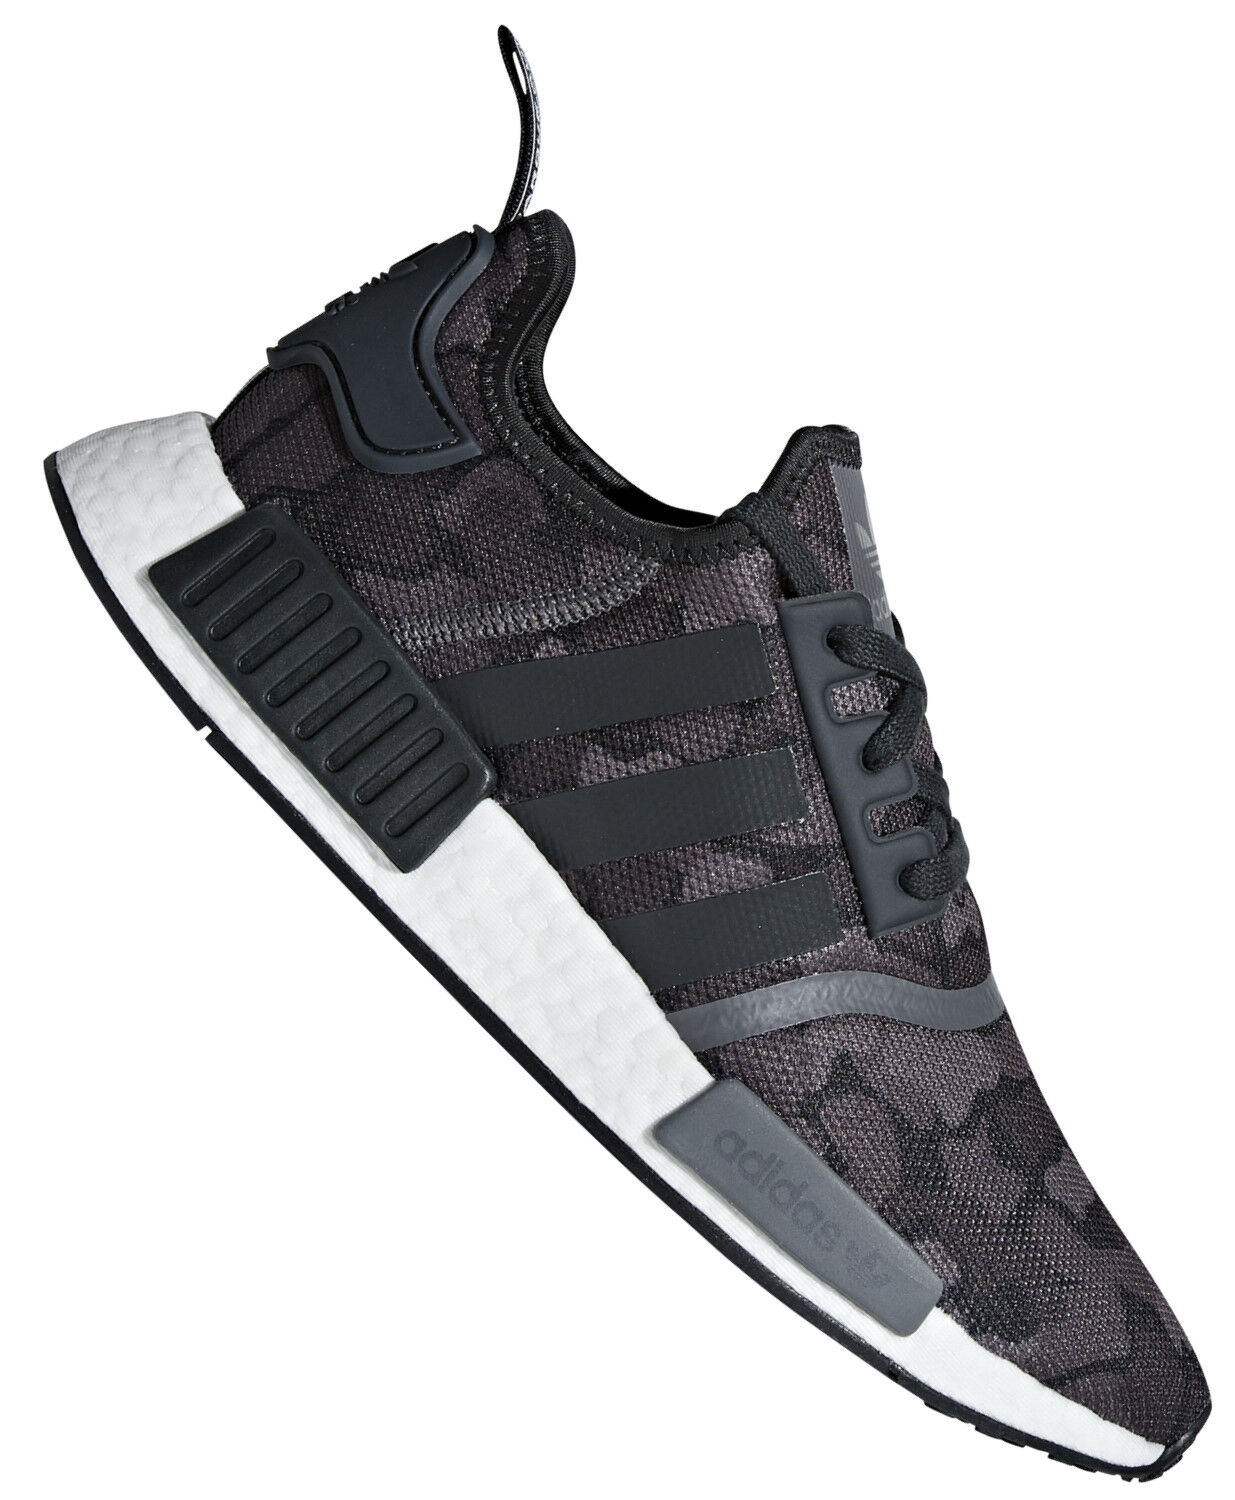 69052cc8acf009 Adidas Schuh NMD R1 Sneaker core black camouflage